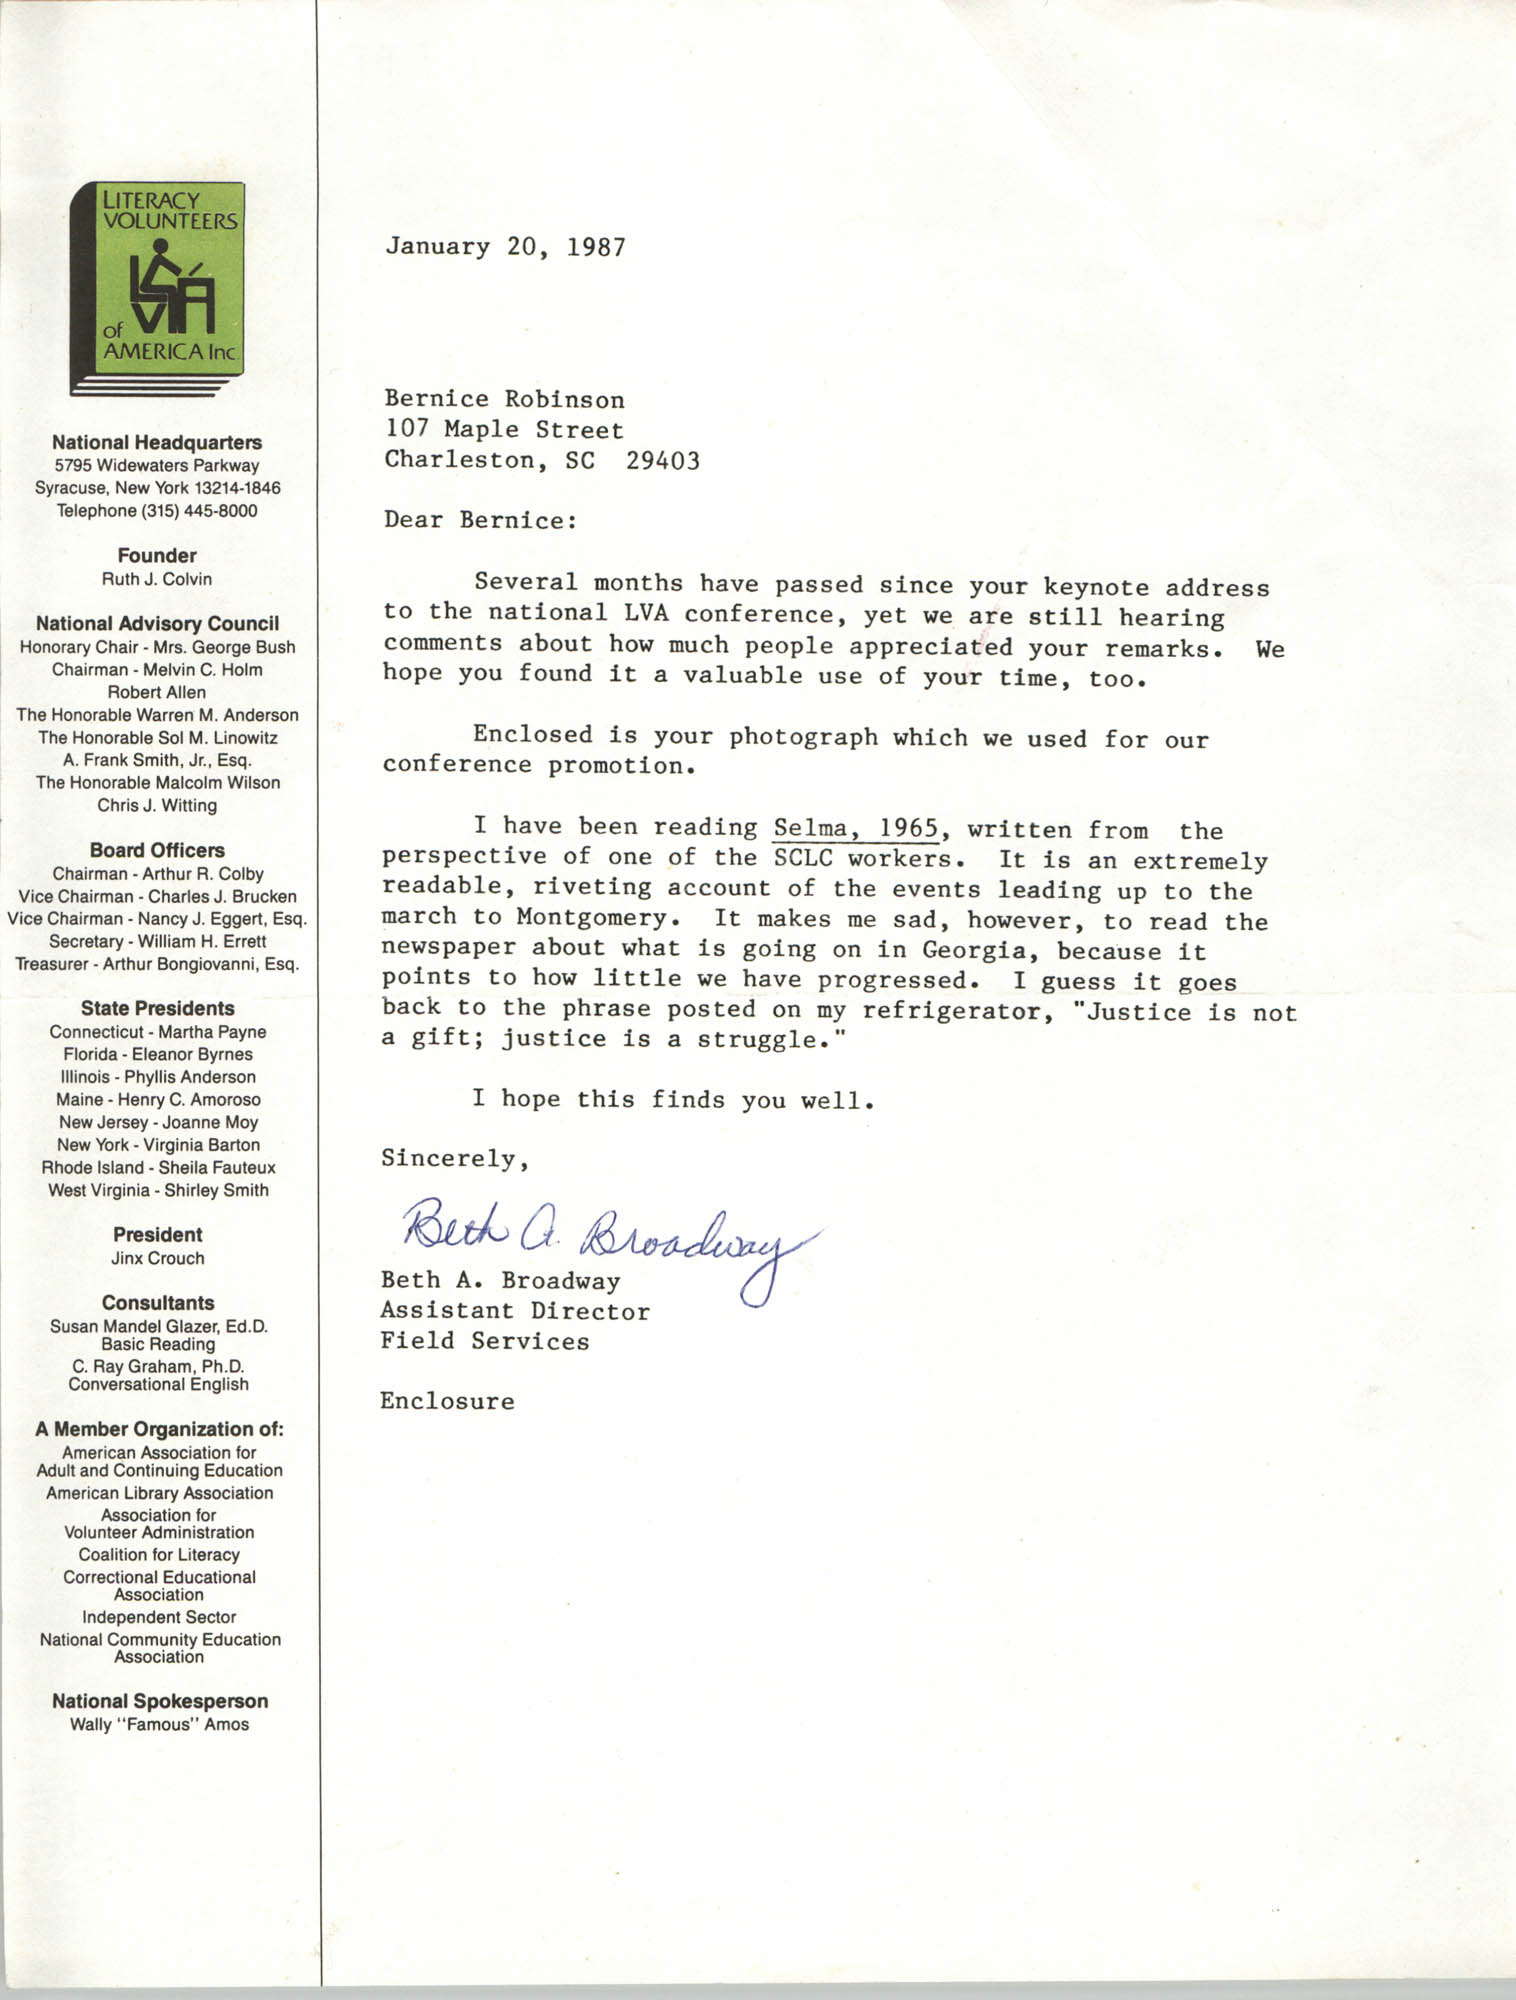 Letter from Beth A. Broadway to Bernice Robinson, January 20, 1987